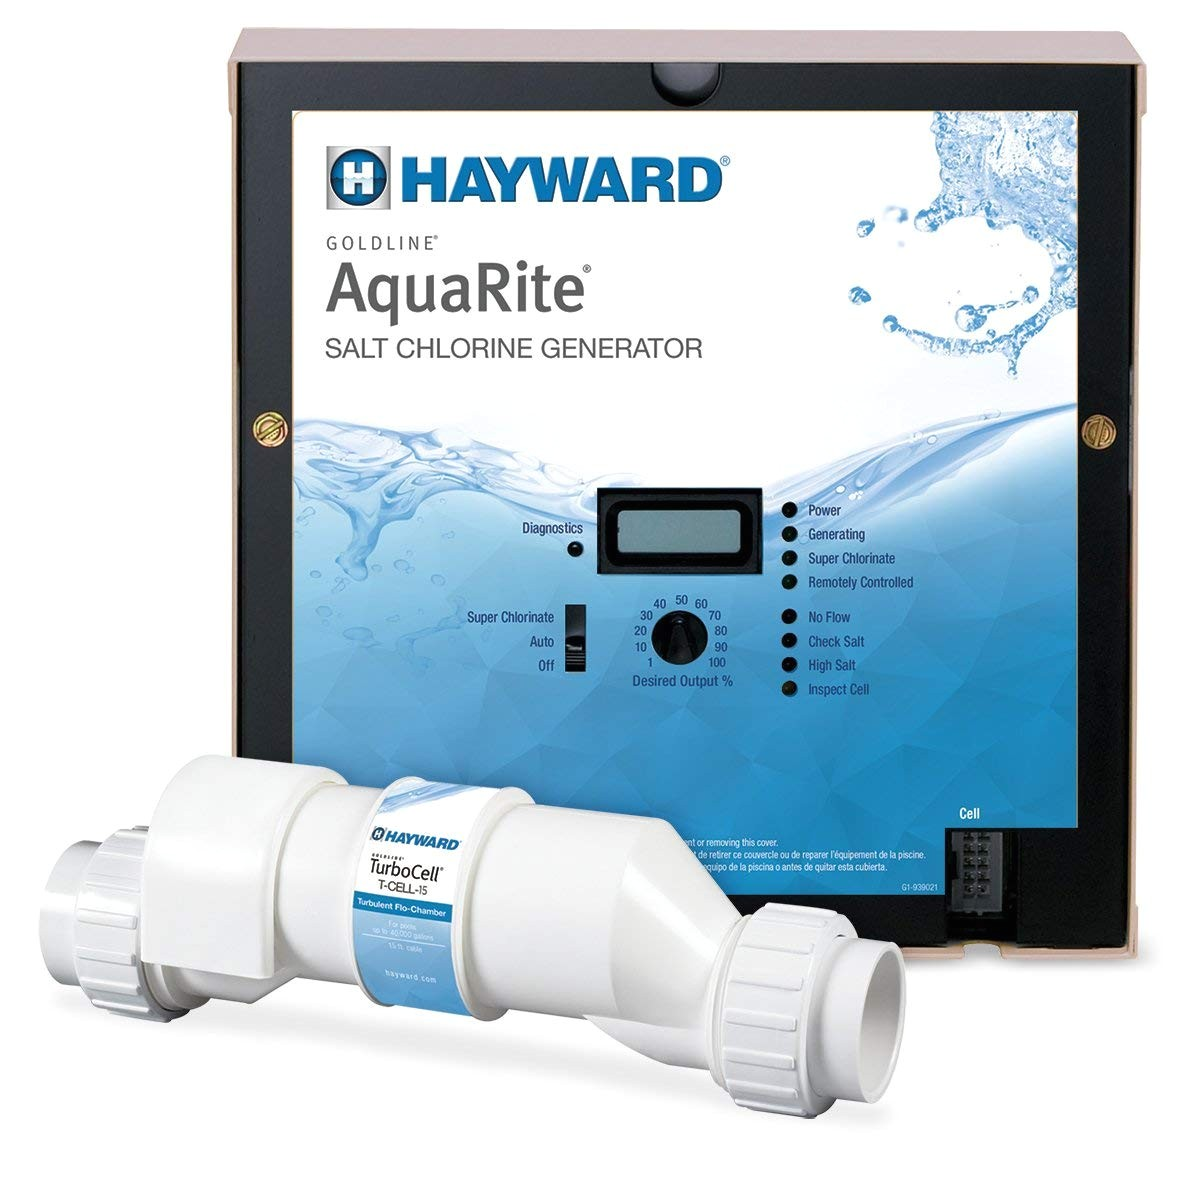 amazon com hayward goldline aqr15 aquarite electronic salt chlorination system for in ground pools 40 000 gallon cell swimming pool chlorine garden